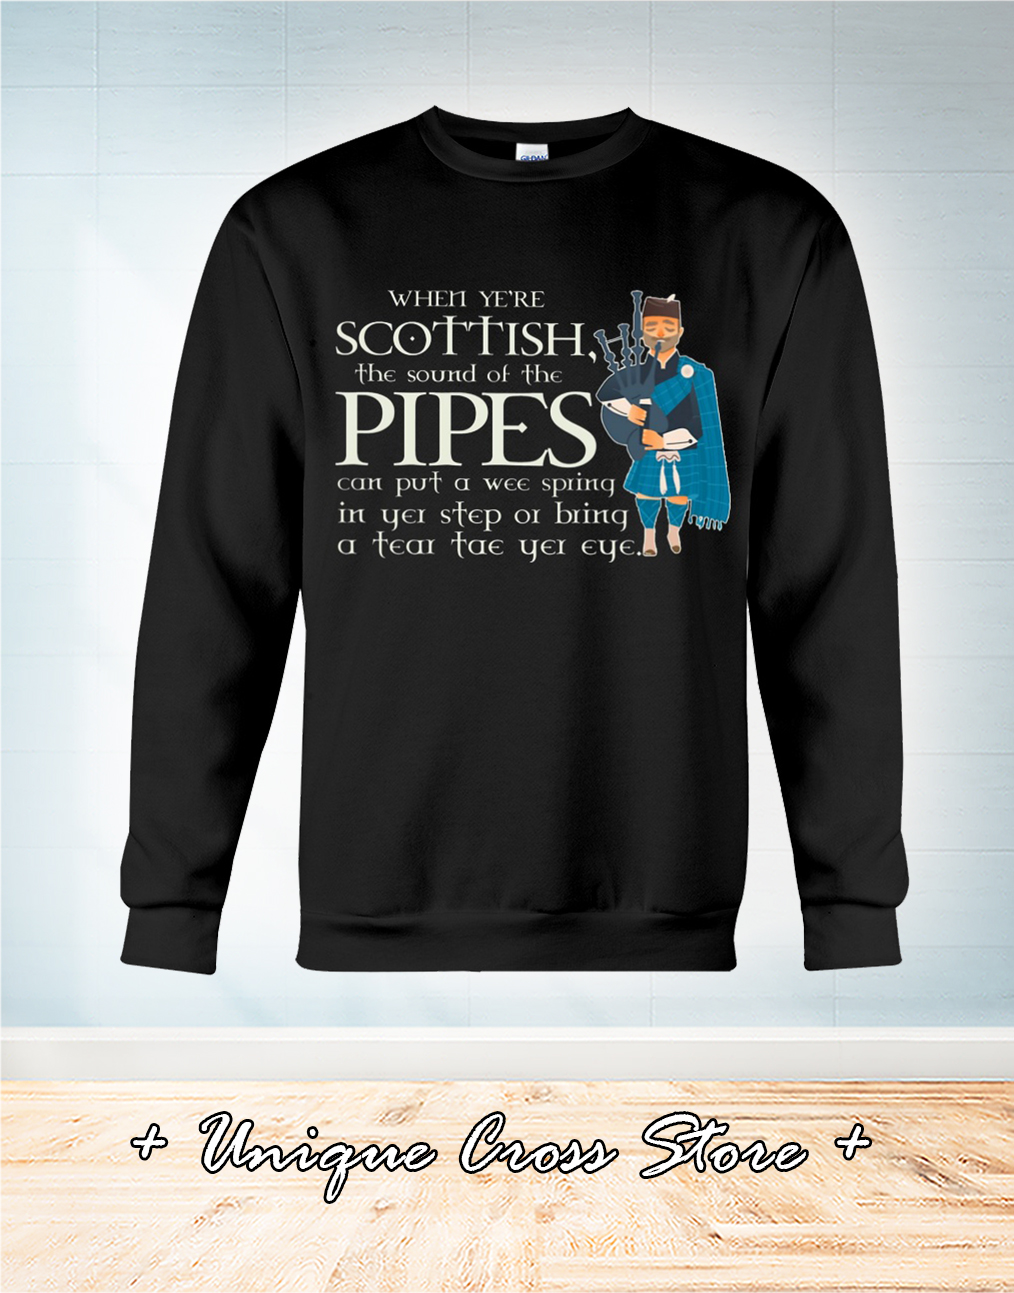 When Ye're Scottish The Sound Of The Pipes sweater